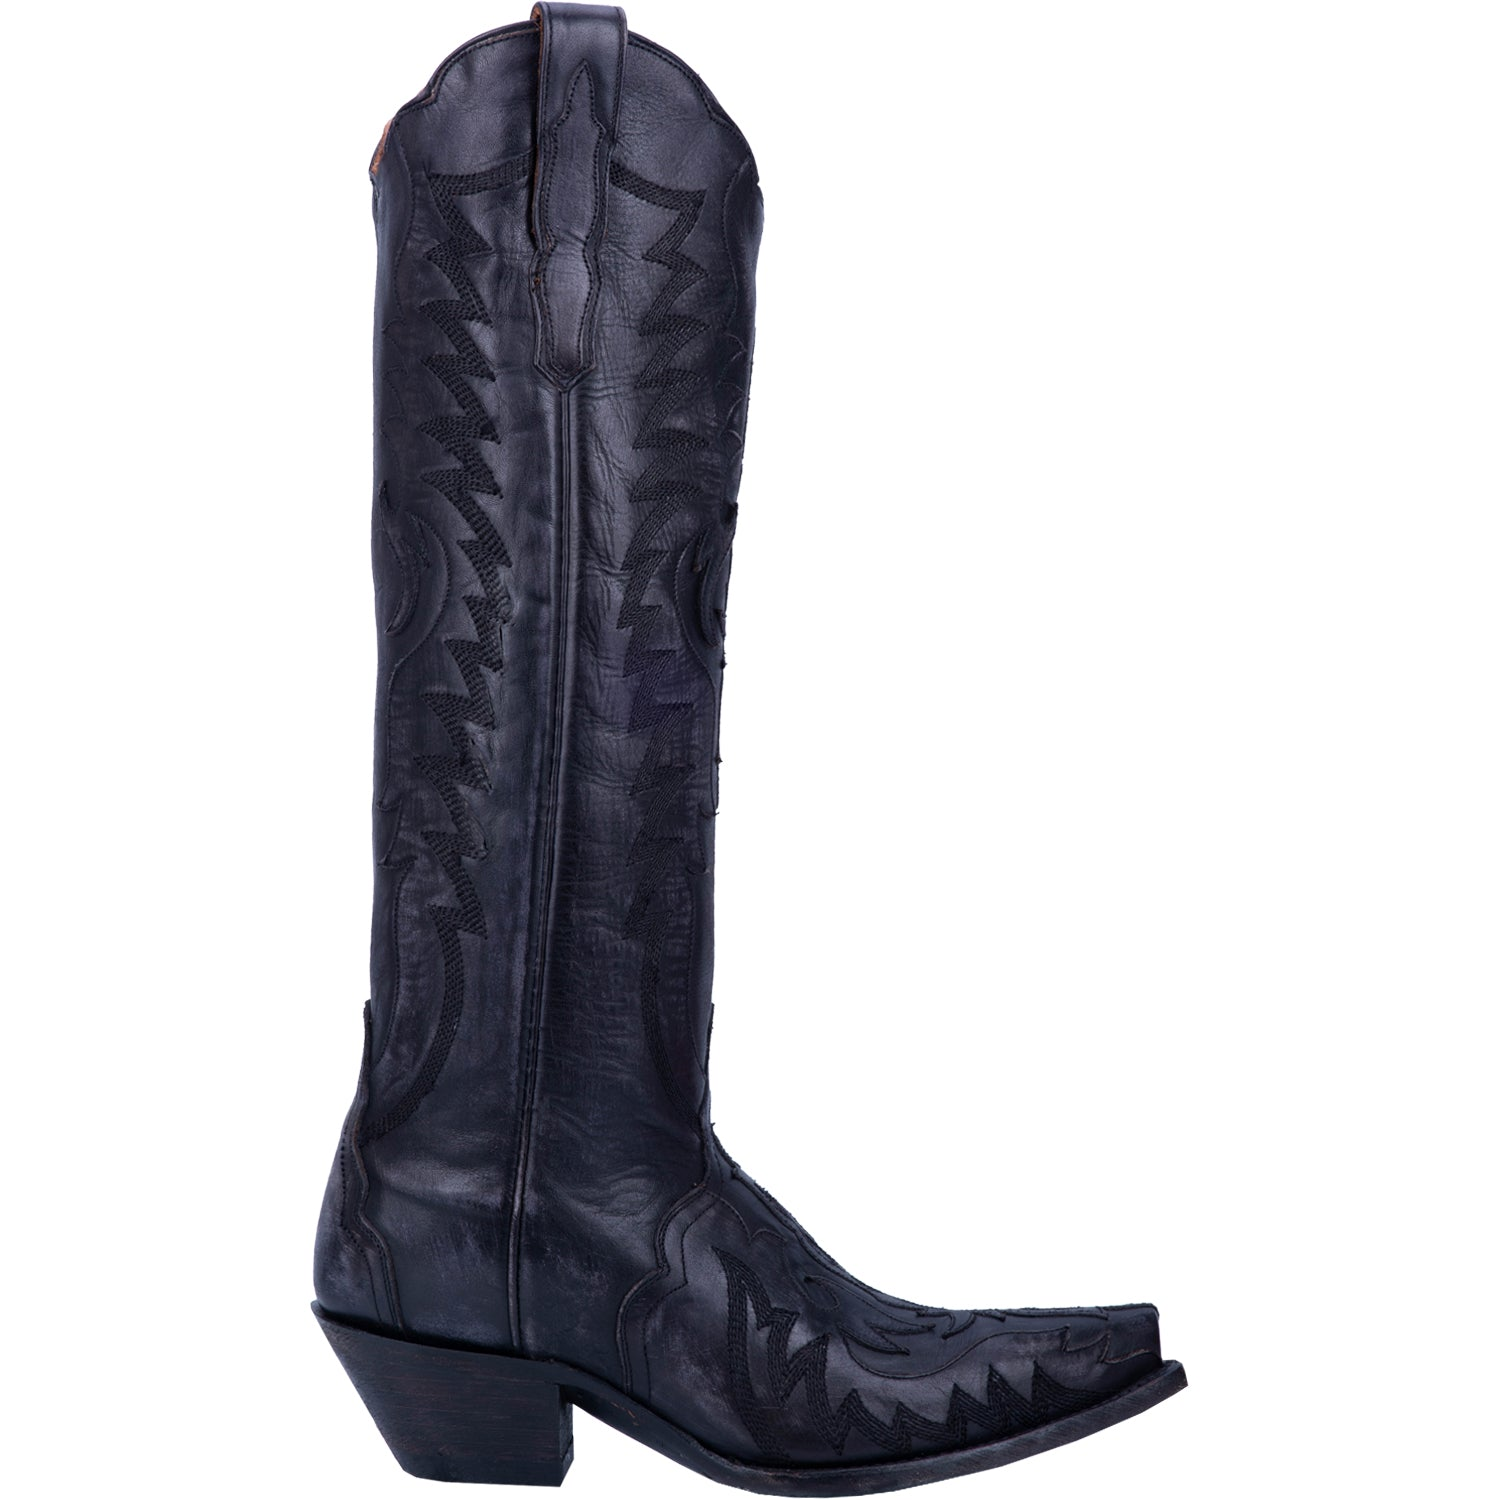 HALLIE LEATHER BOOT 5391875538986